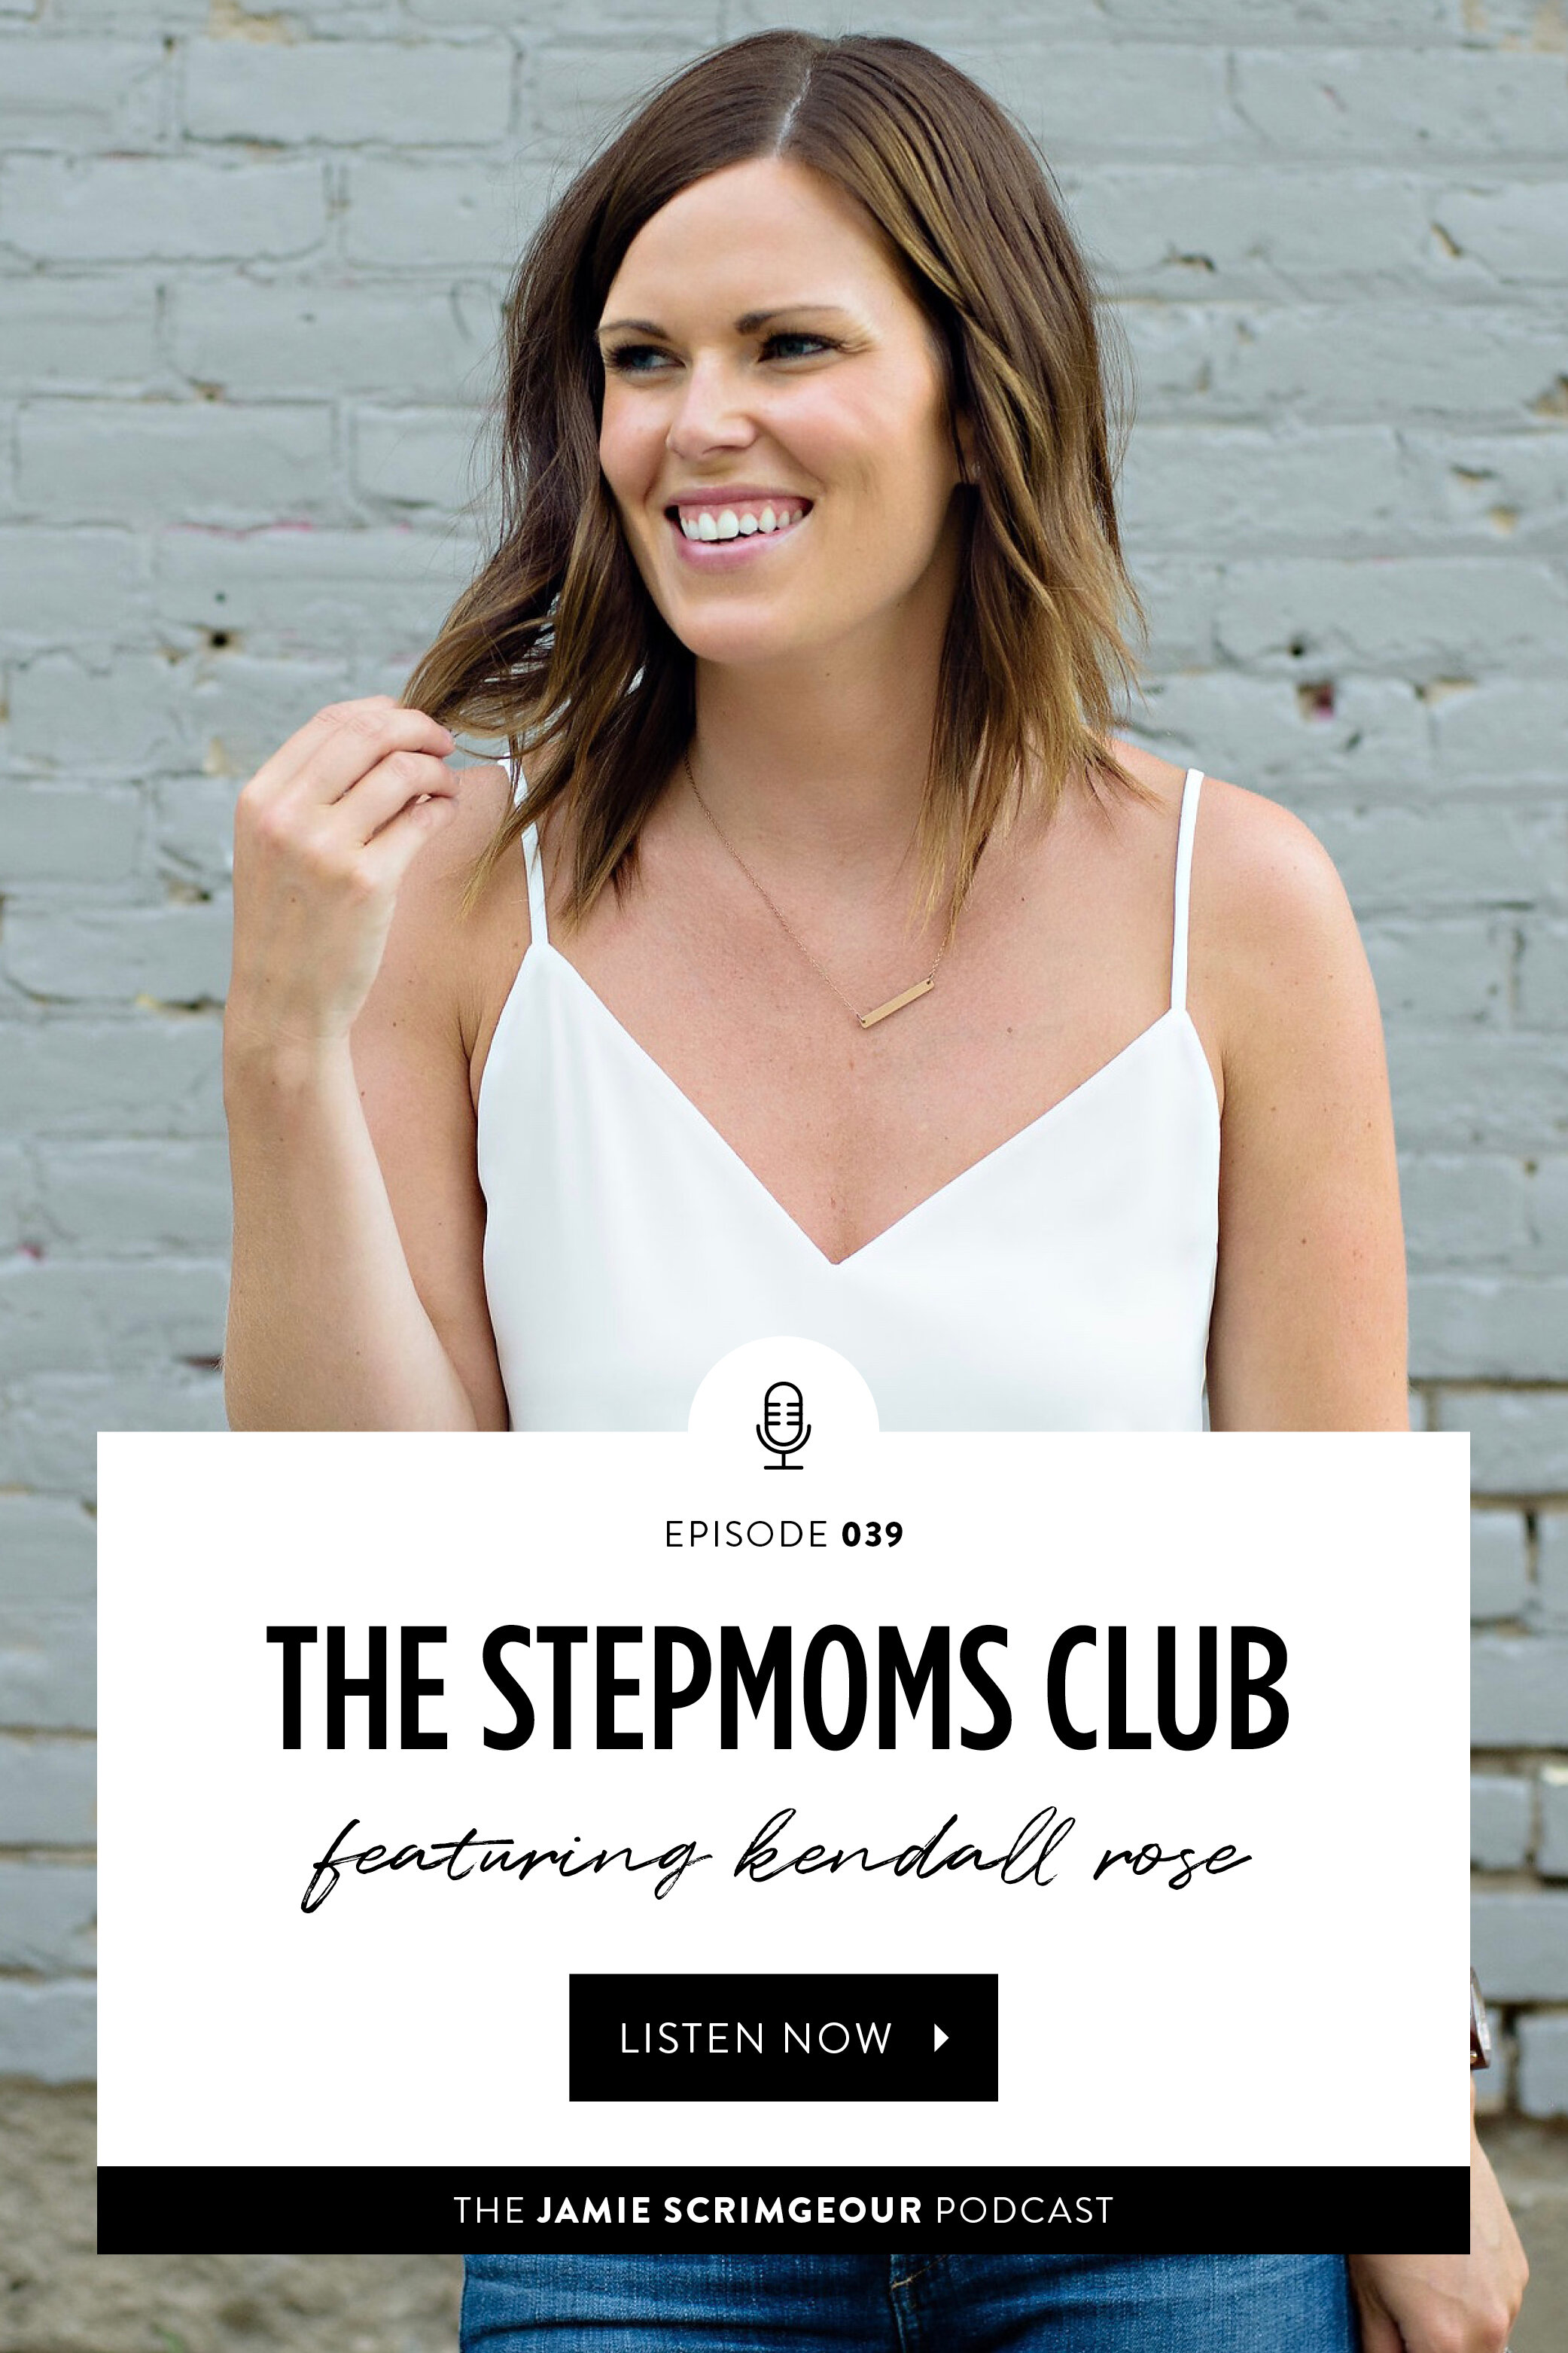 The Stepmoms Club with Kendall Rose on EP 39 of The Jamie Scrimgeour Podcast